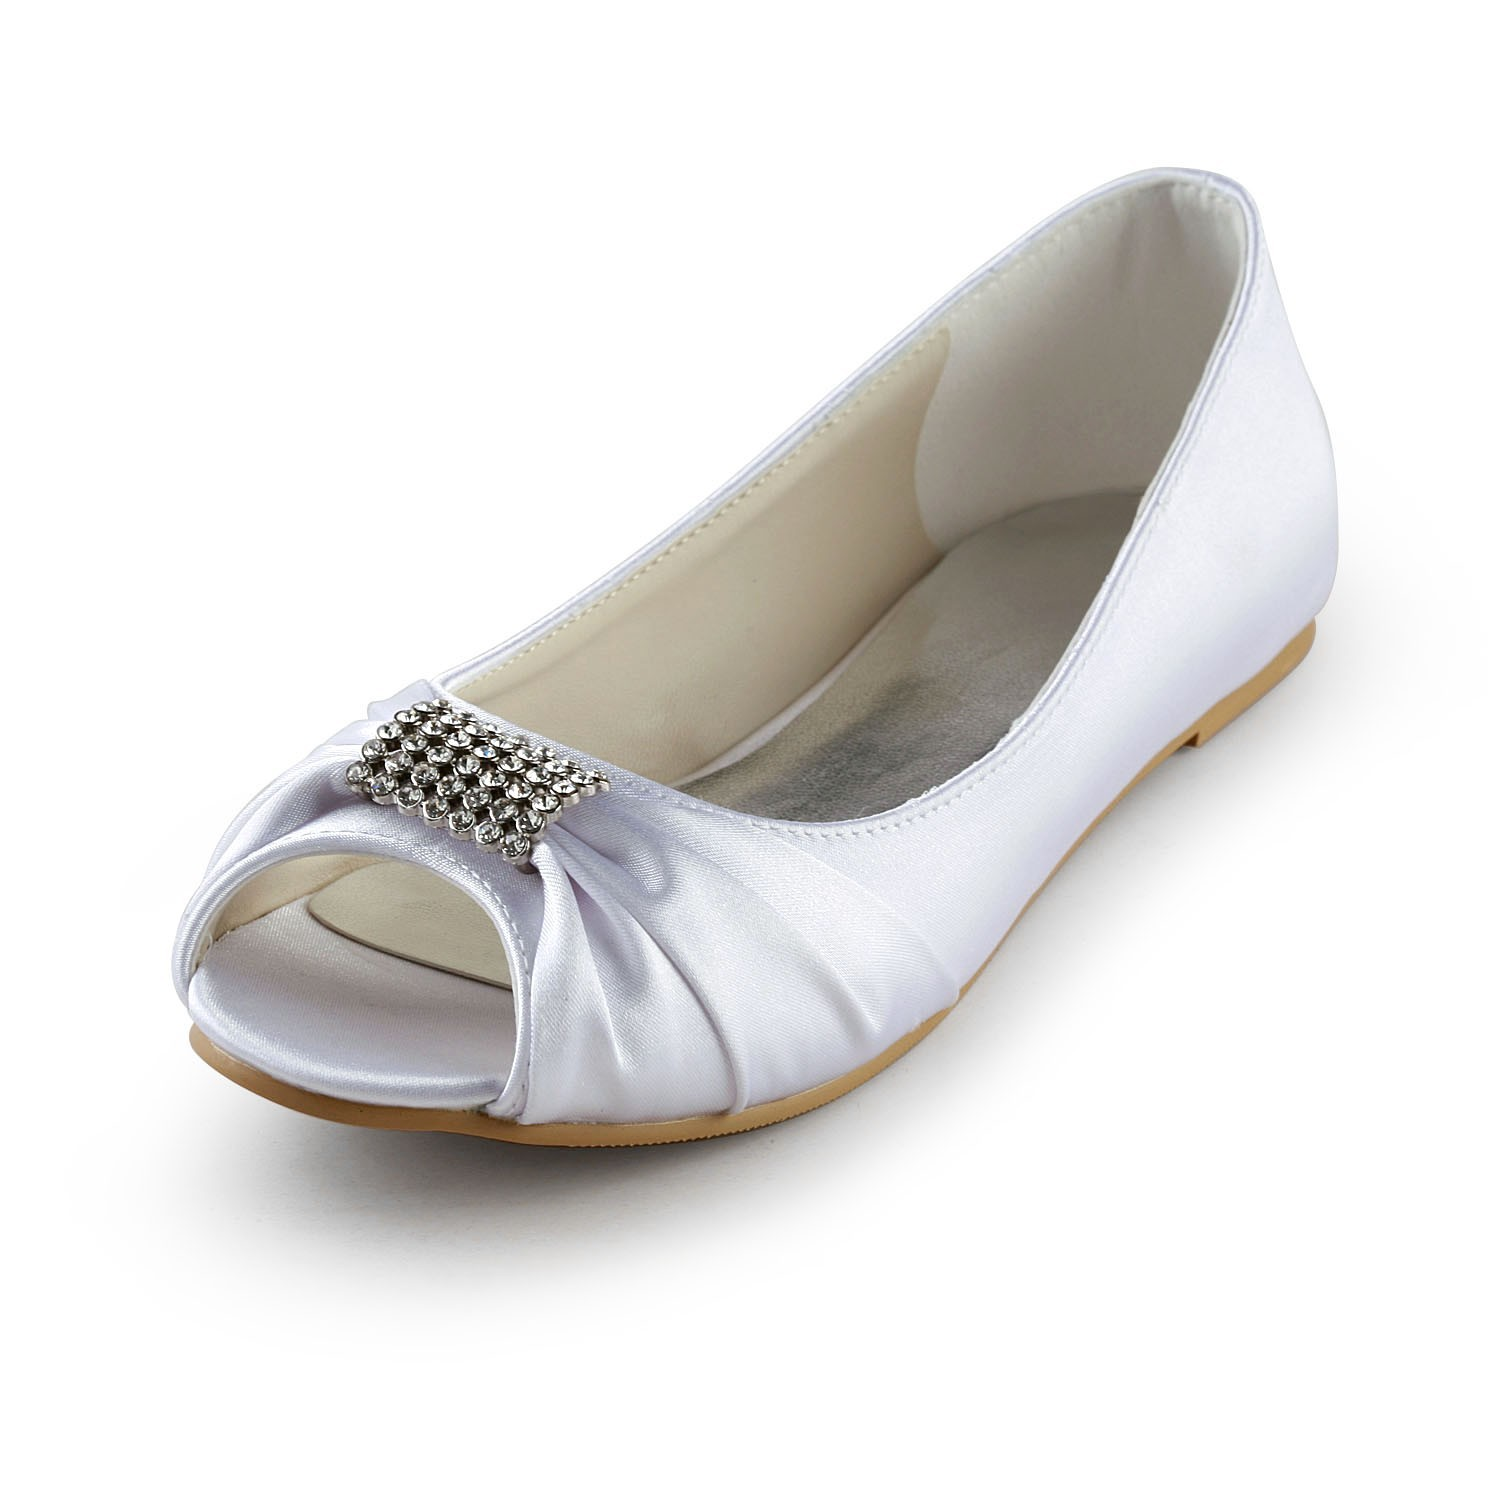 Womens Satin Flat Heel Peep Toe Sandals White Wedding Shoes With Rhinestone